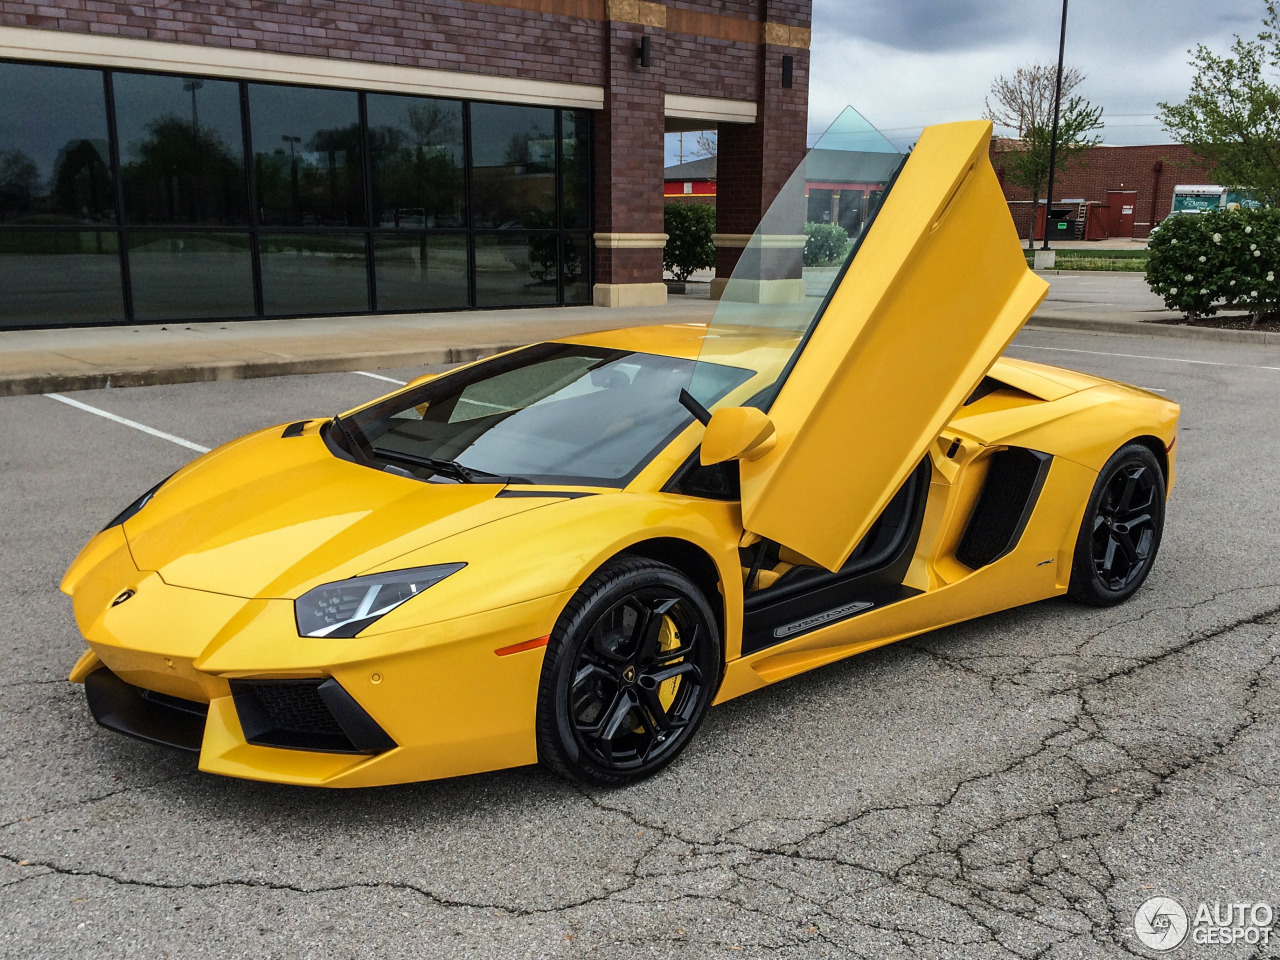 Lamborghini Aventador ... Lamborghini Aventador Yellow And Black